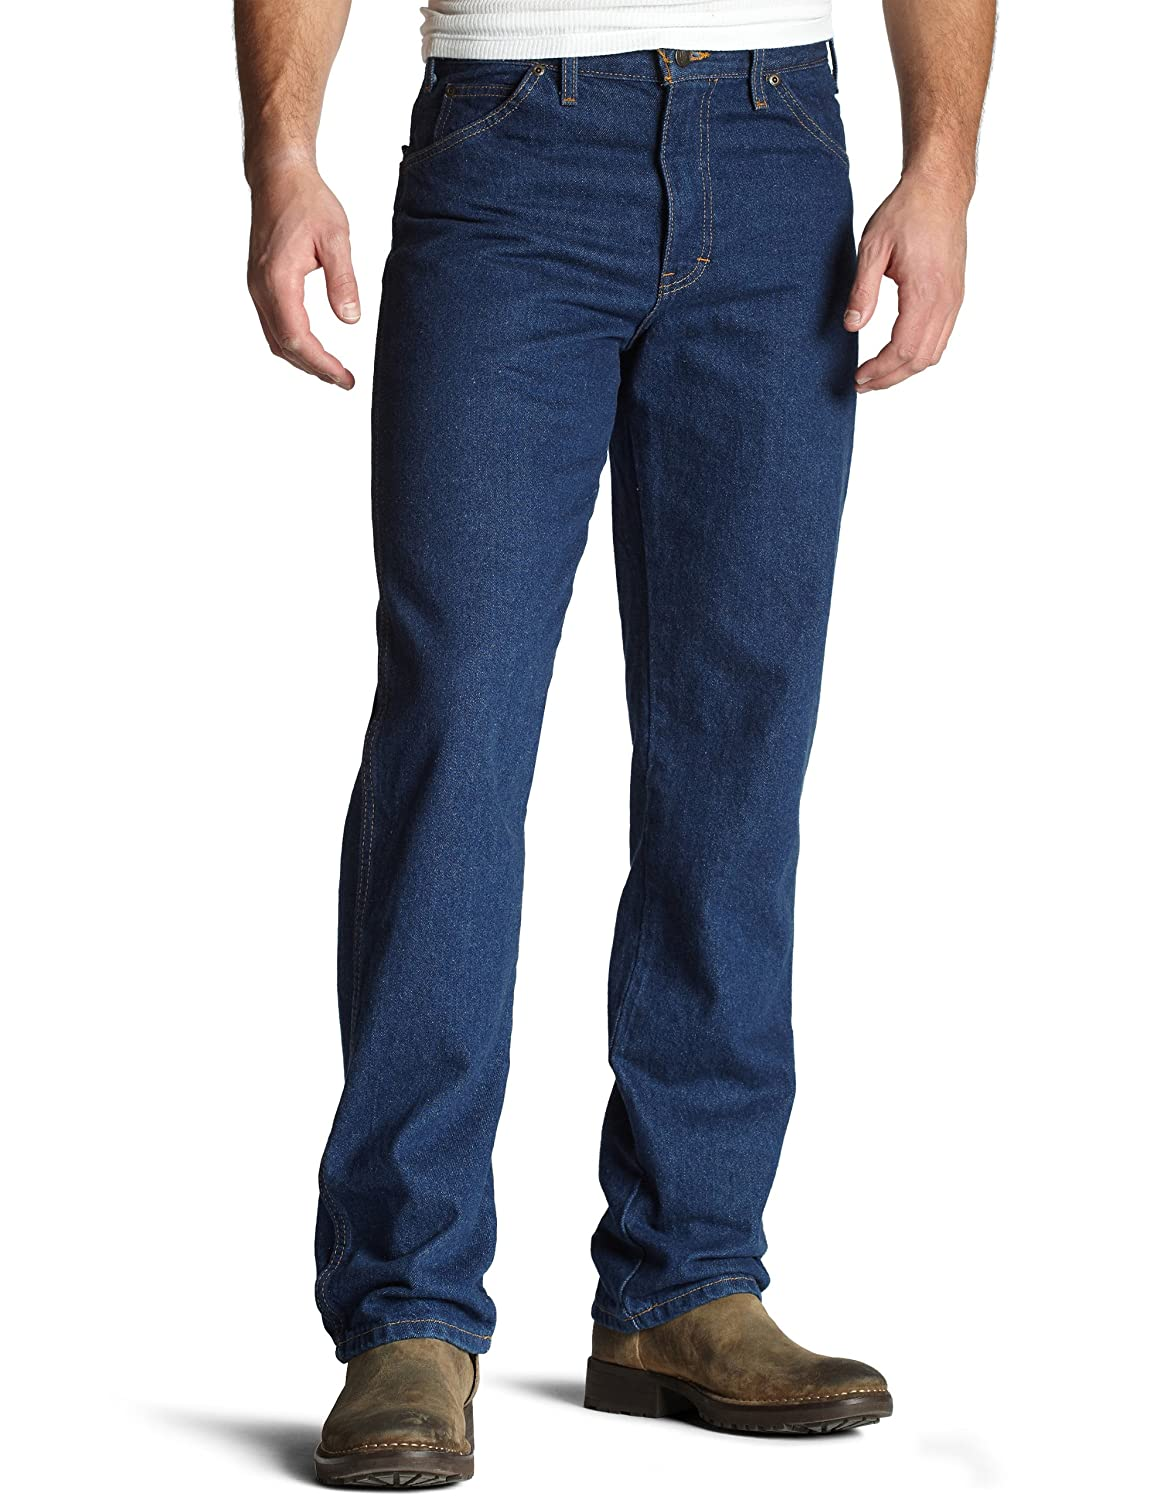 Dickies Men's Regular-Fit 5-Pocket Jean Heavyweight Cotton Denim Work Pants Dickies Men's Sportswear 9393RNB